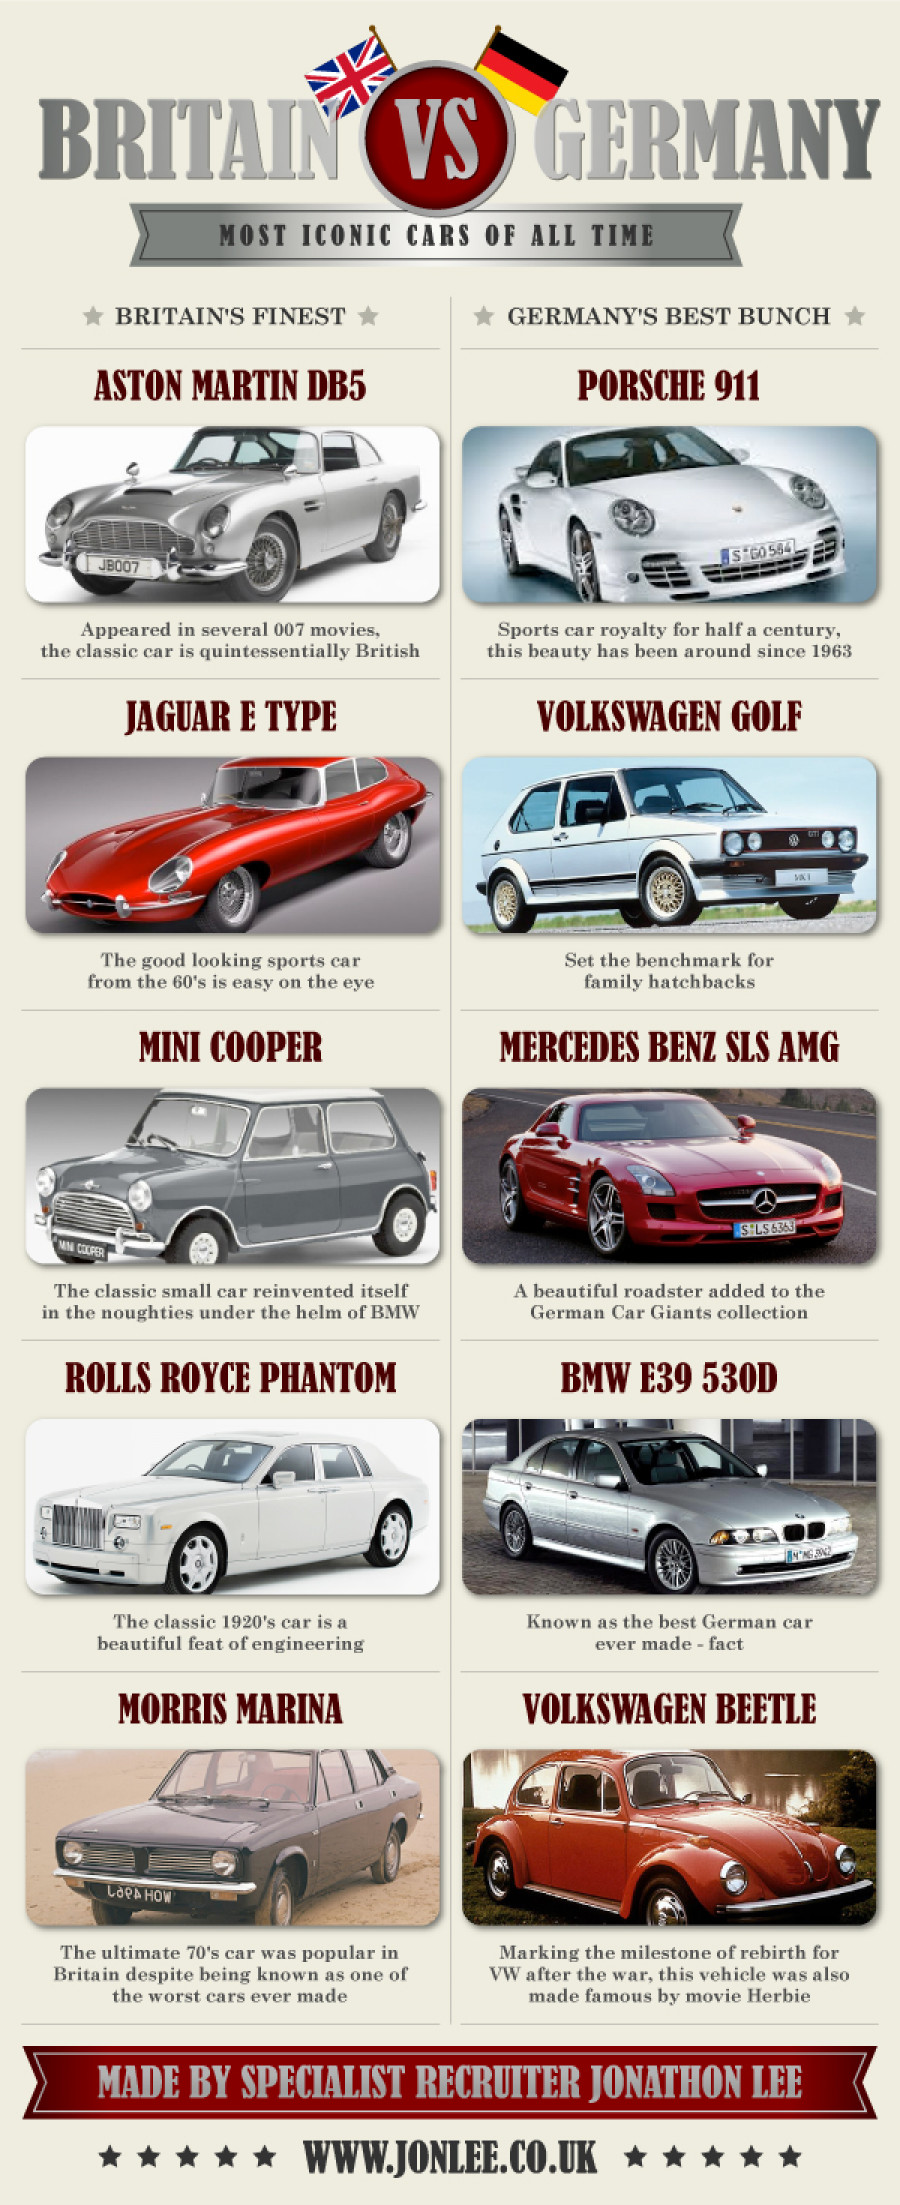 174148? w=900 - The Greatest Classic Cars of All Time